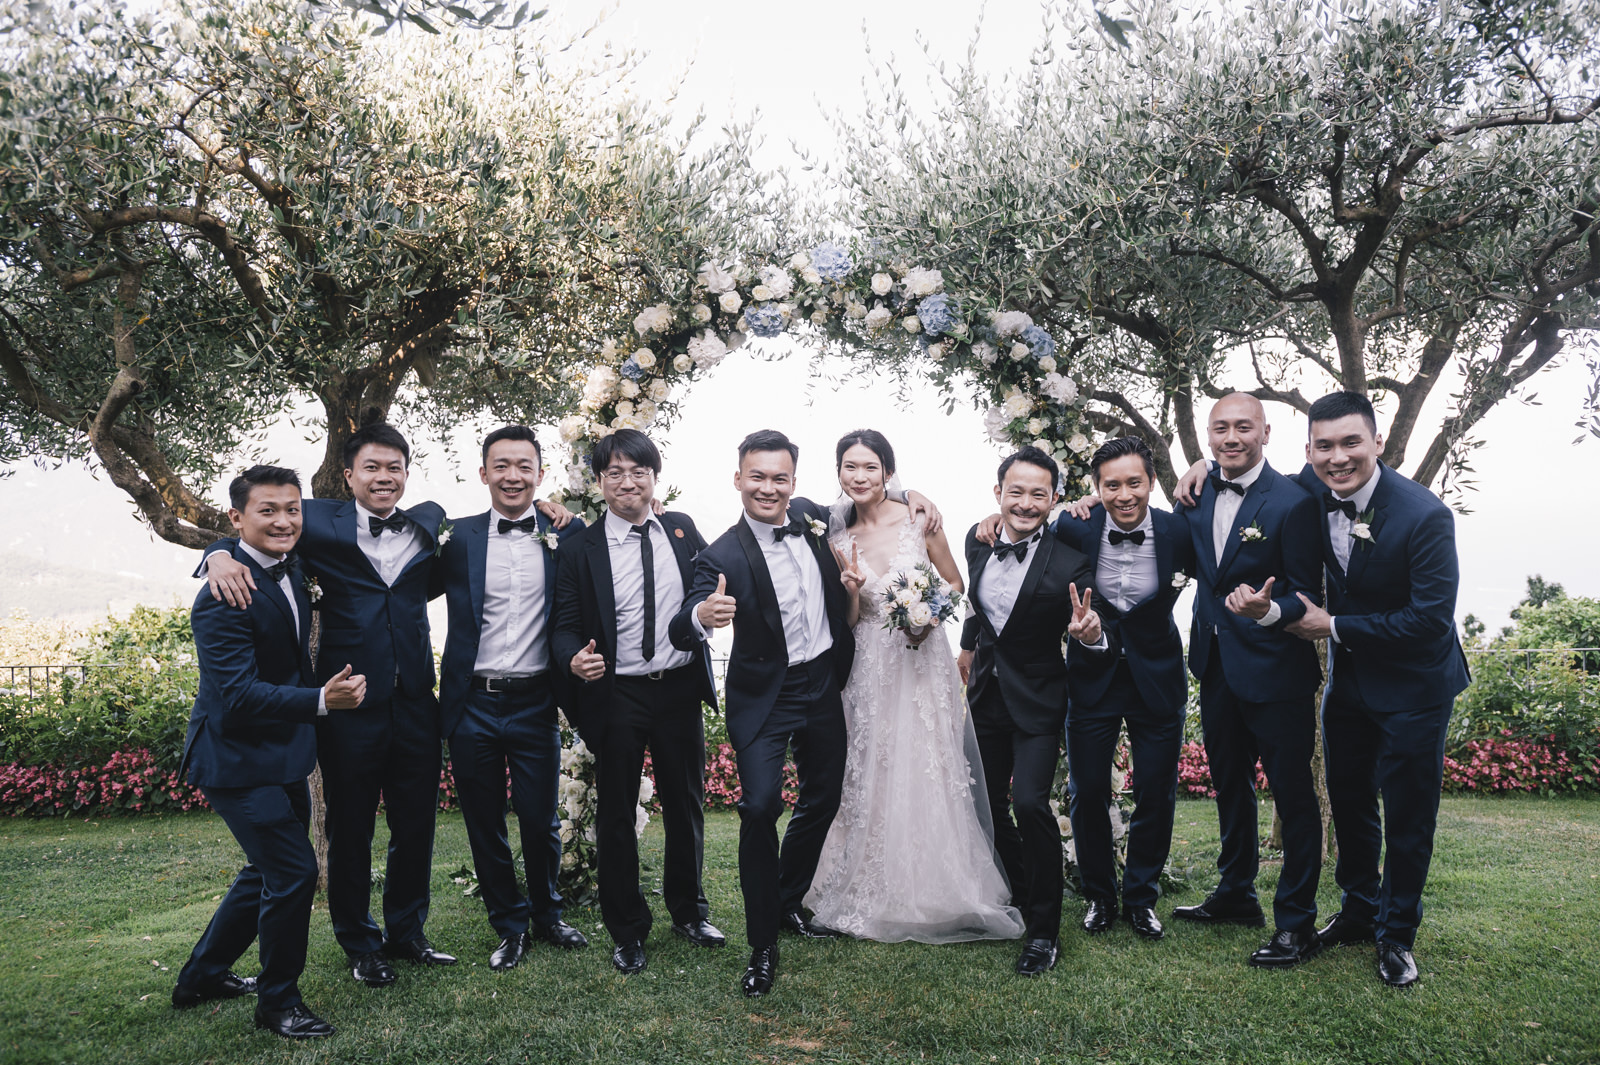 the bride and the groom with the best men